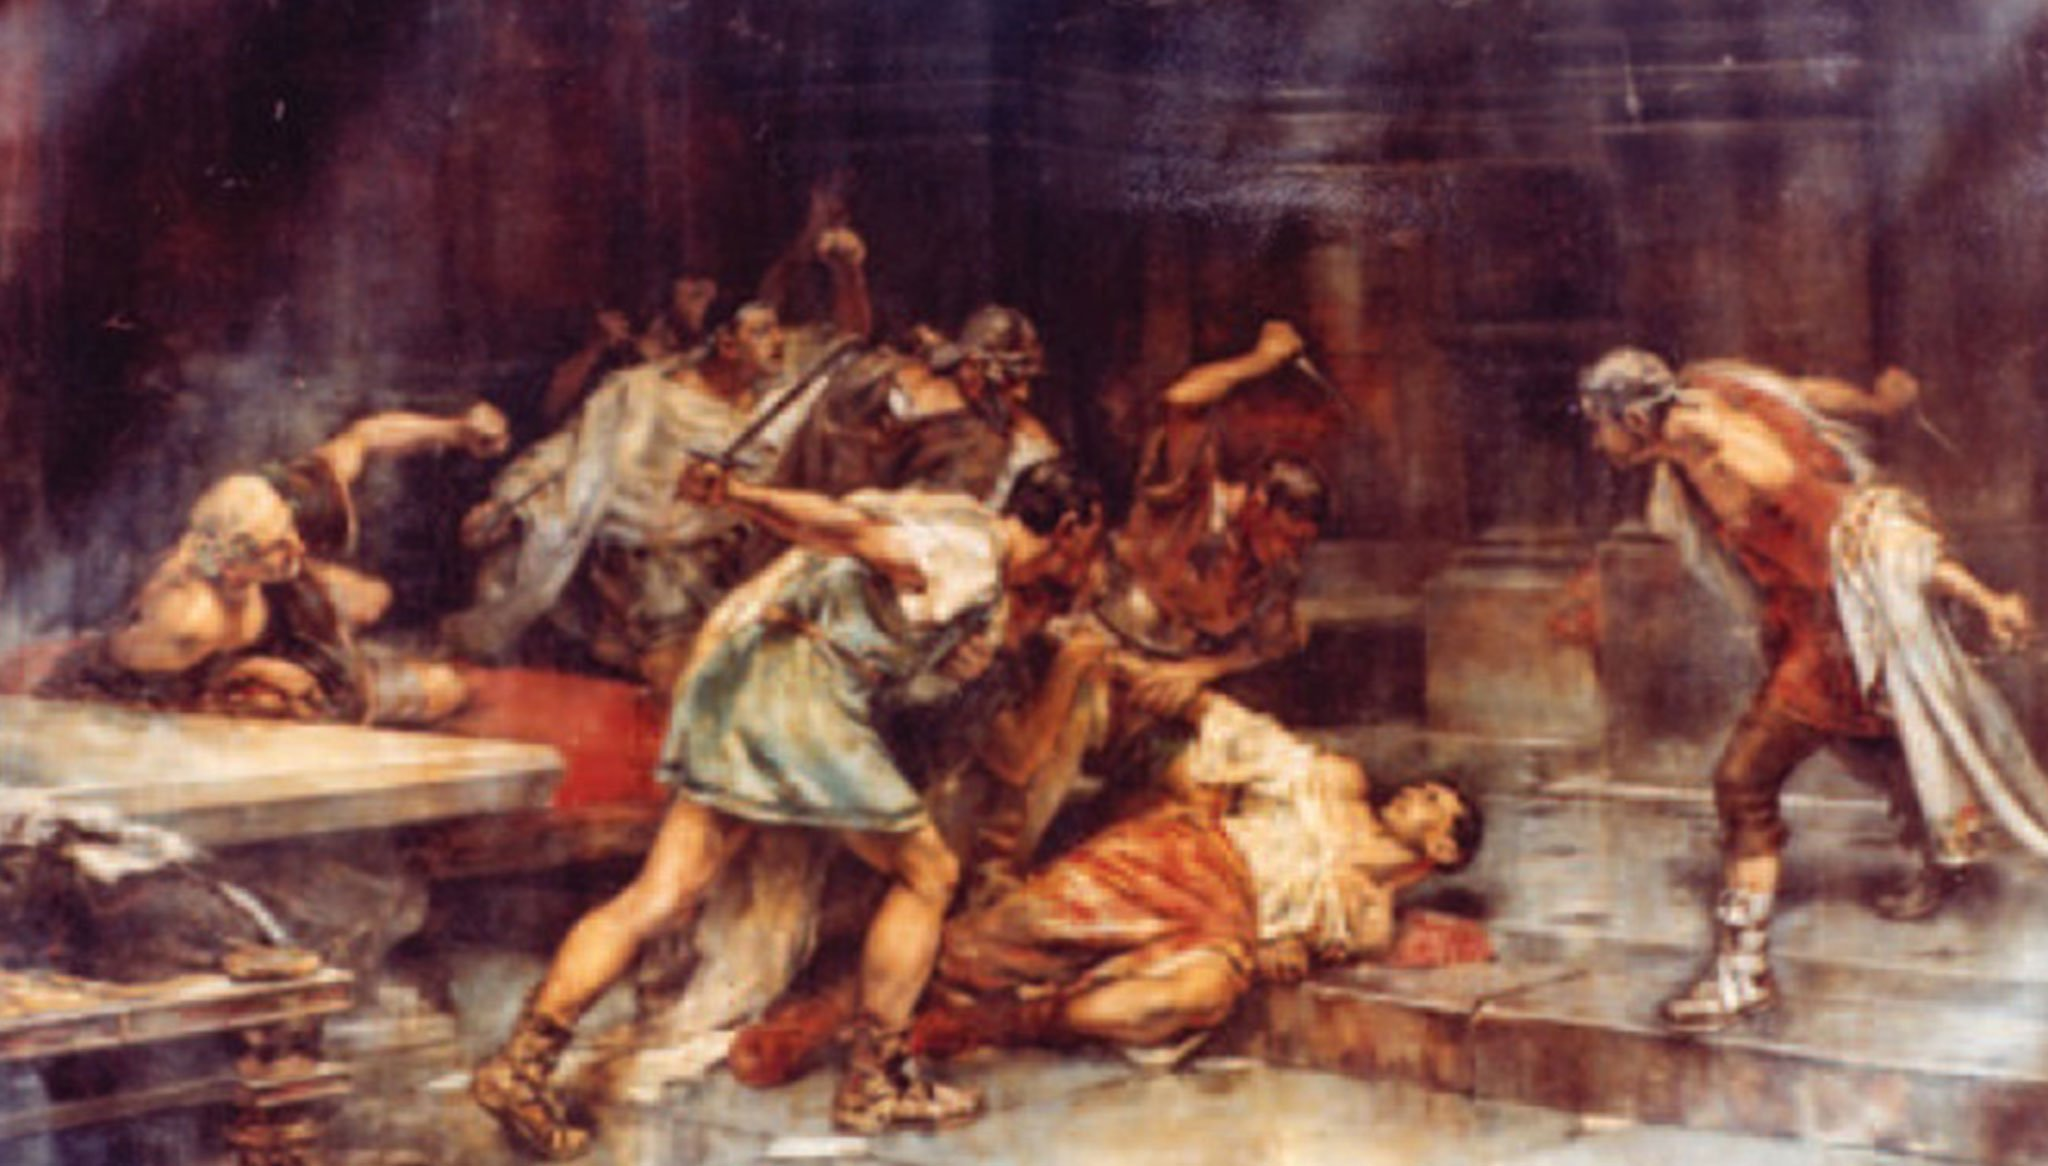 """Table """"The death of Sertorio"""", by Vicente Cutanda (Source: Wikimedia Commons)"""